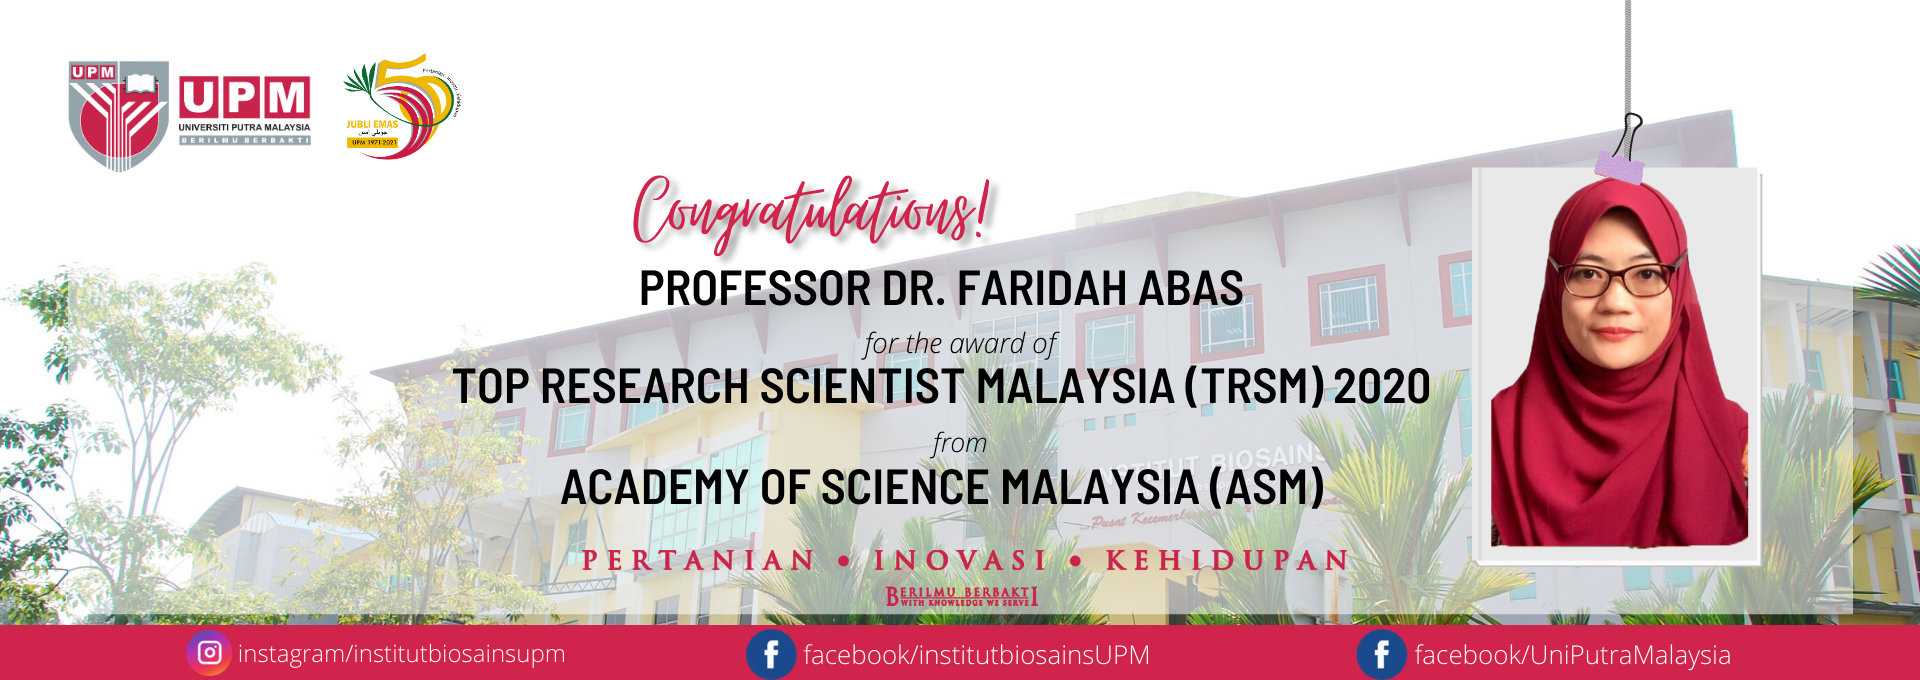 TOP RESEARCH SCIENTIST MALAYSIA 2020